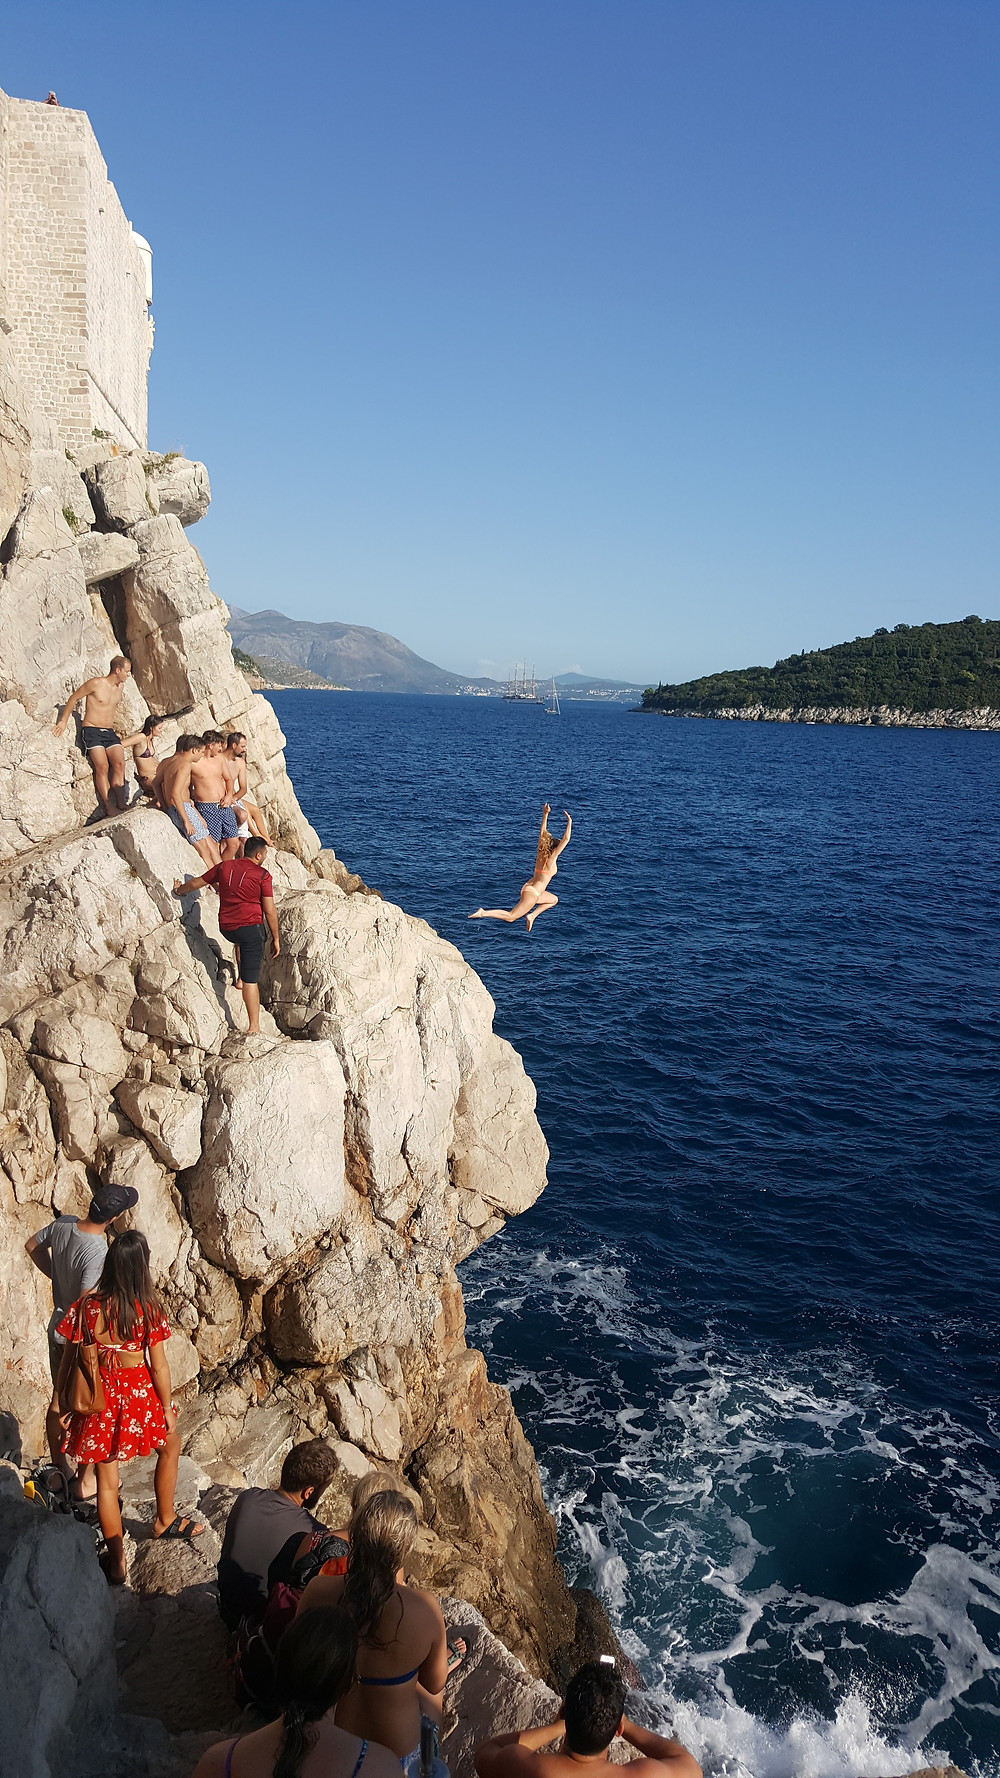 Cliff jumping on the outskirts of the Old Town, Dubrovnik, Croatia - Life Itinerant